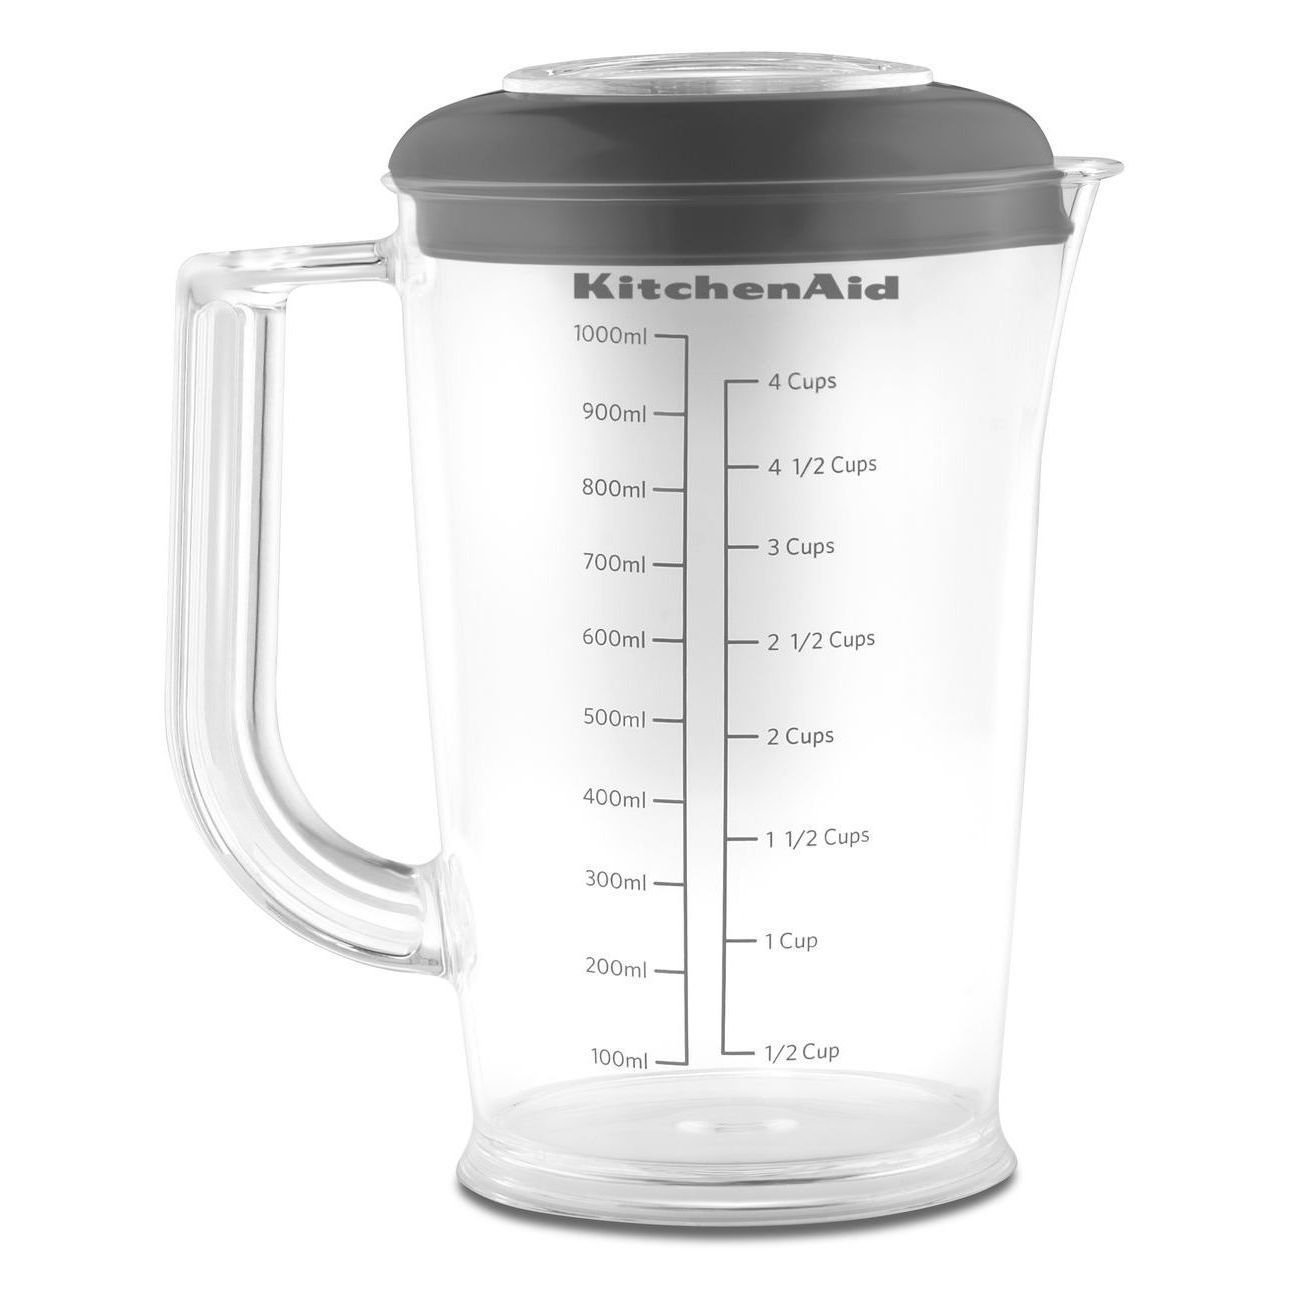 KitchenAid KHB005 4 Cup (1 Liter) BPA-Free Blending Pitcher with Lid